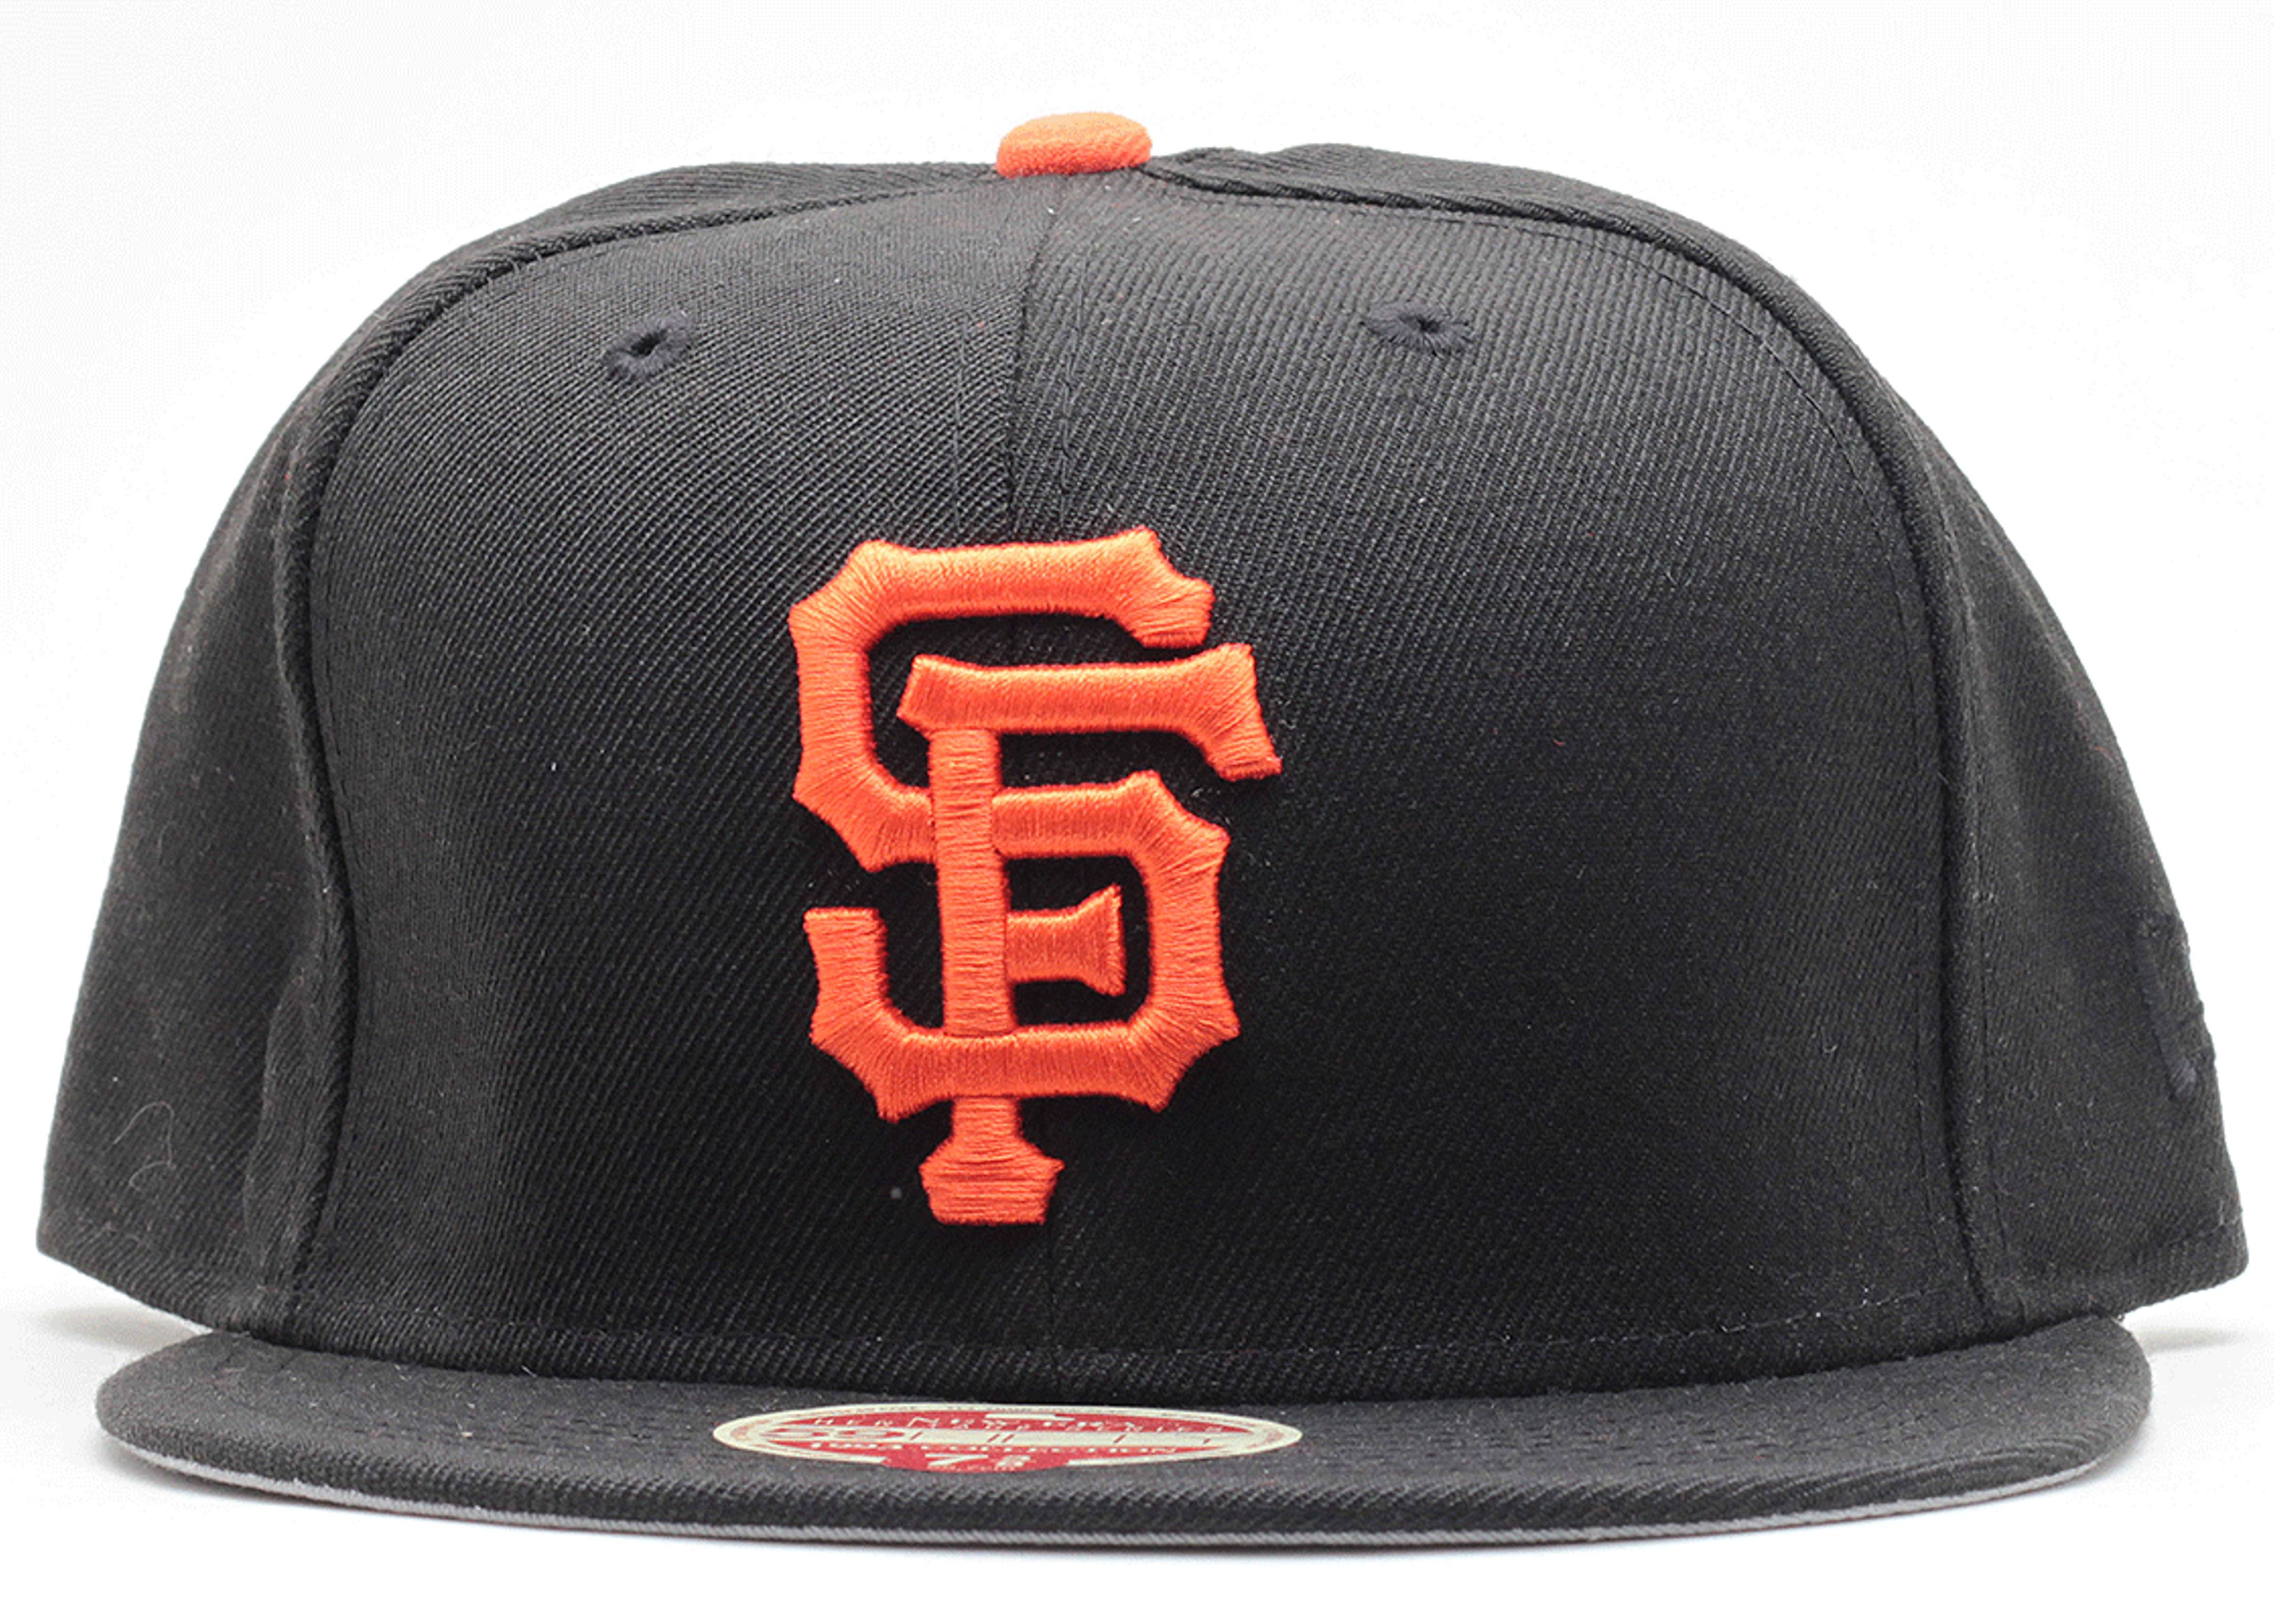 """san francisco giants fitted """"1993 collection"""""""